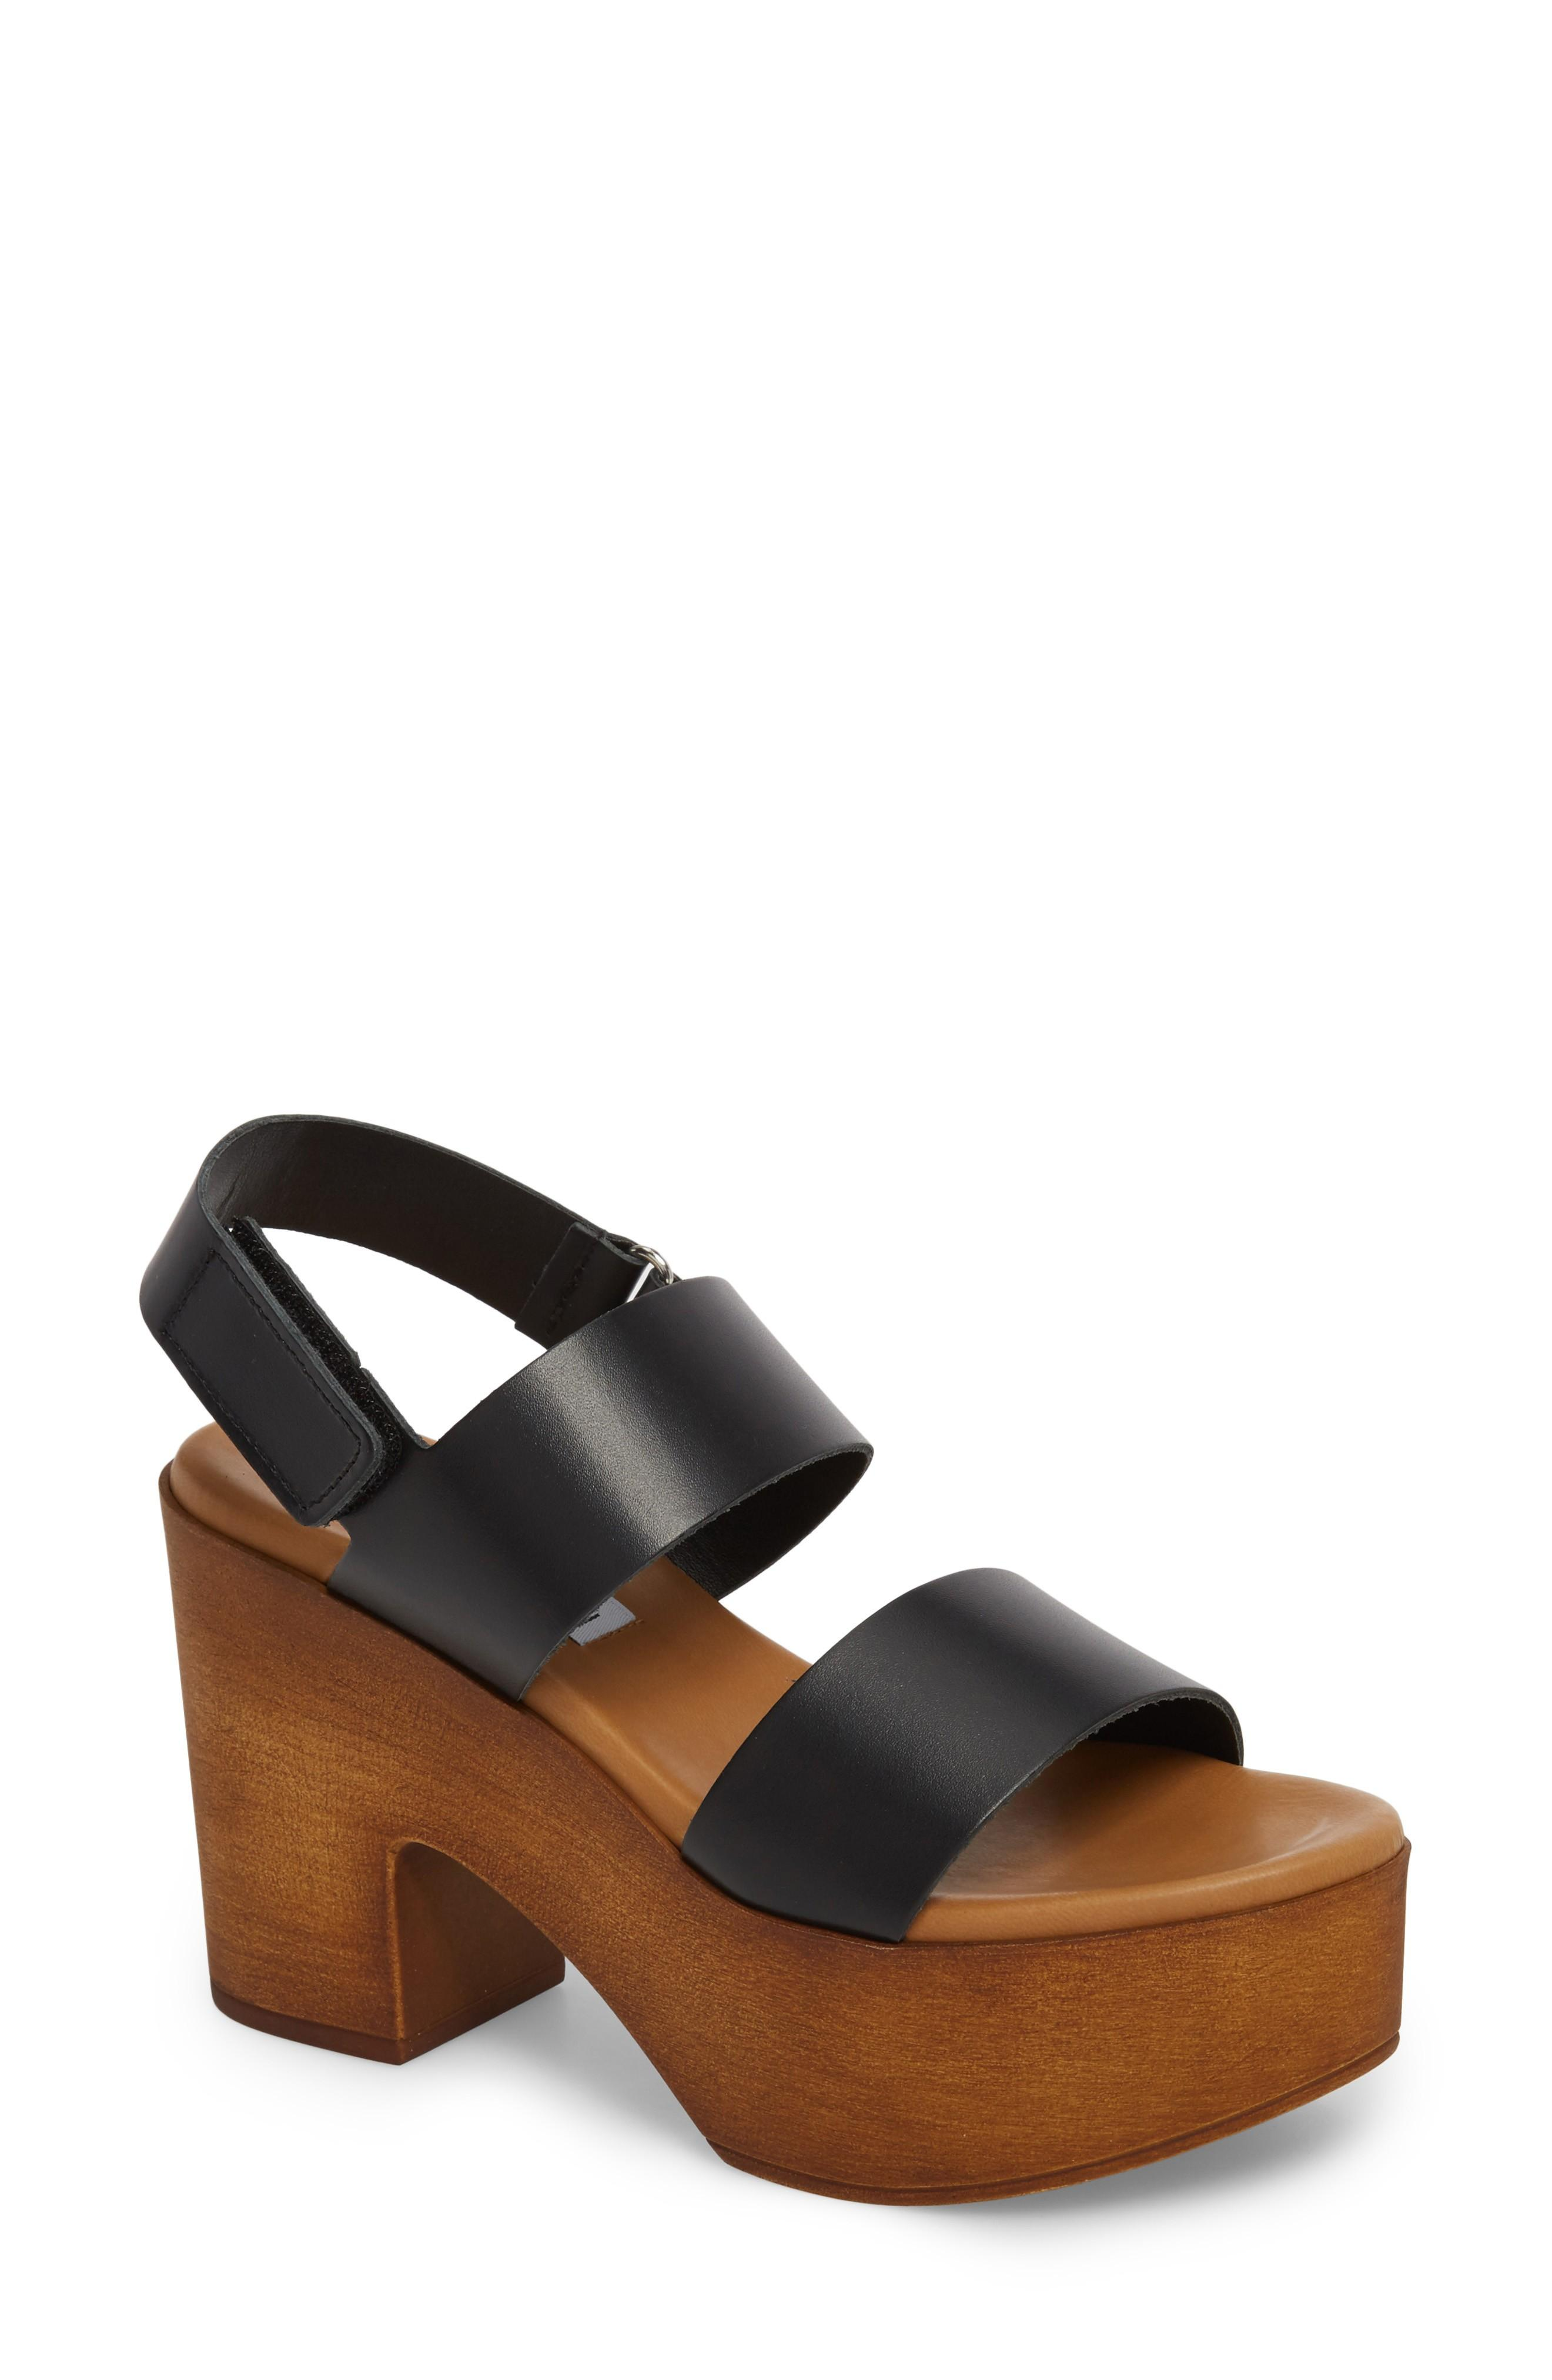 74759c93923 ... retro attitude of a sandal styled simply with bold bridge straps and an  adjustable slingback. Style Name  Steve Madden Marena Slingback ...